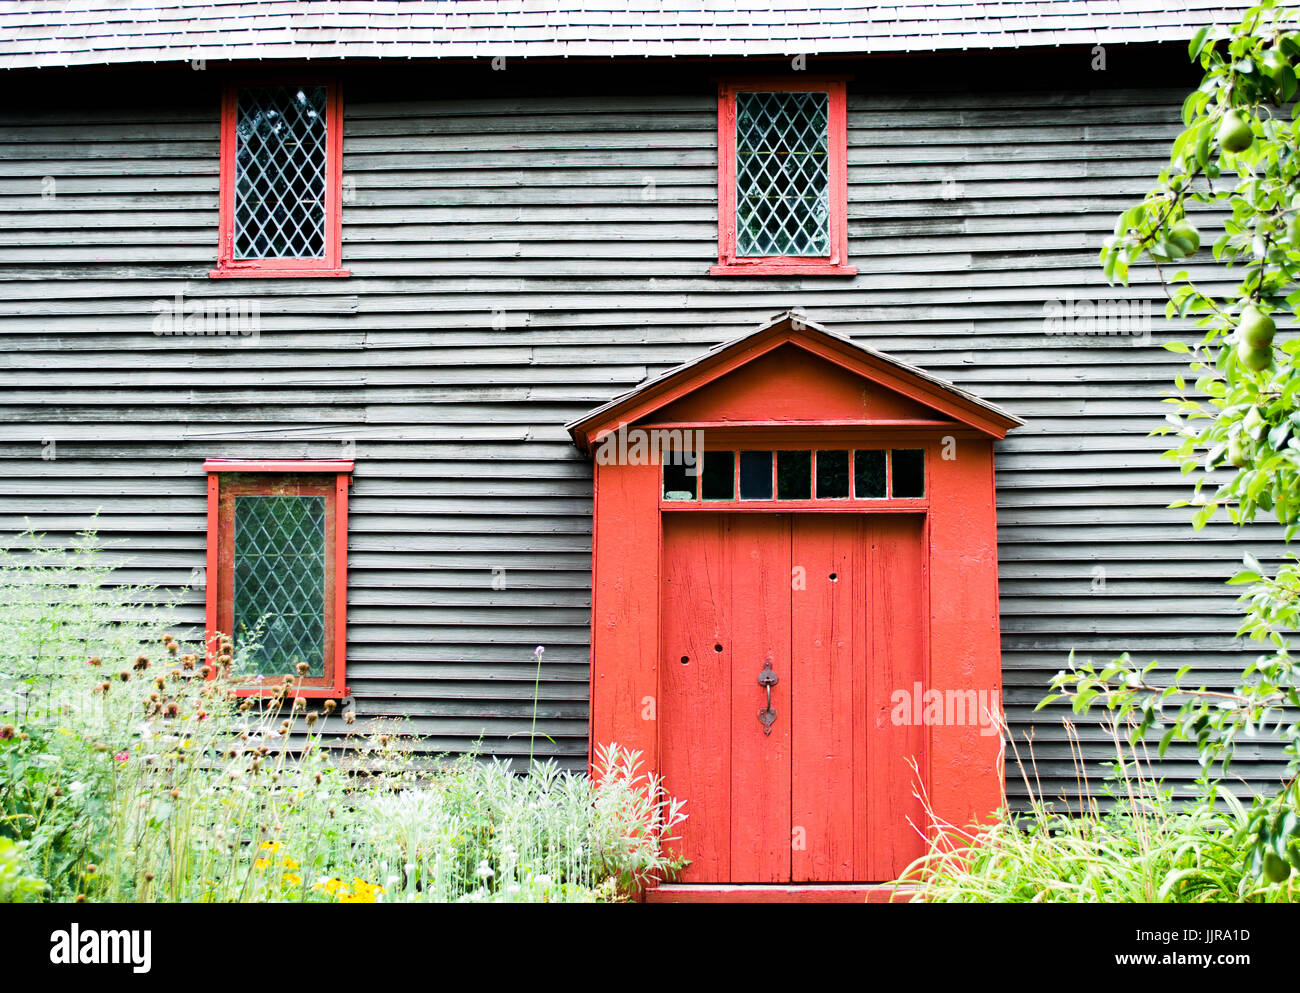 weathered colonial house with brown shingles and red door in Salem Massachusetts  sc 1 st  Alamy & weathered colonial house with brown shingles and red door in Salem ...